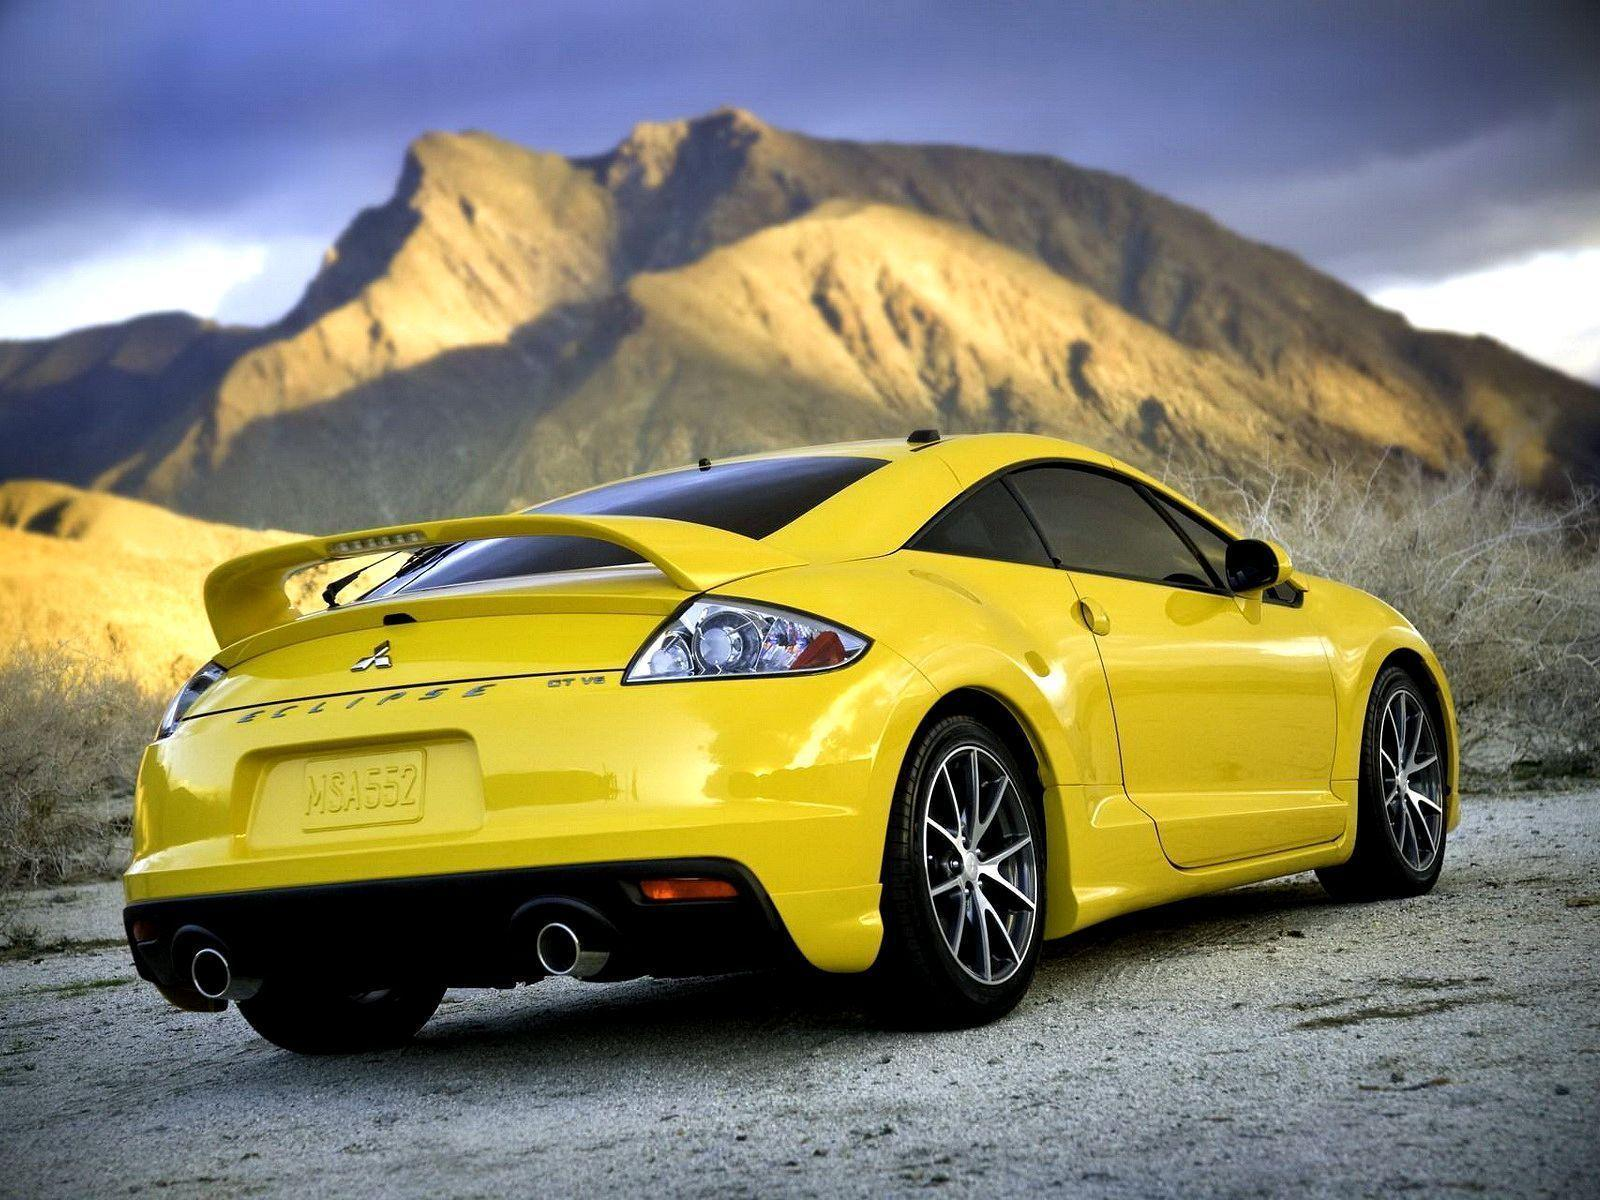 tuning the mitsubishi eclipse torquecars hd wallpapers Car Tuning